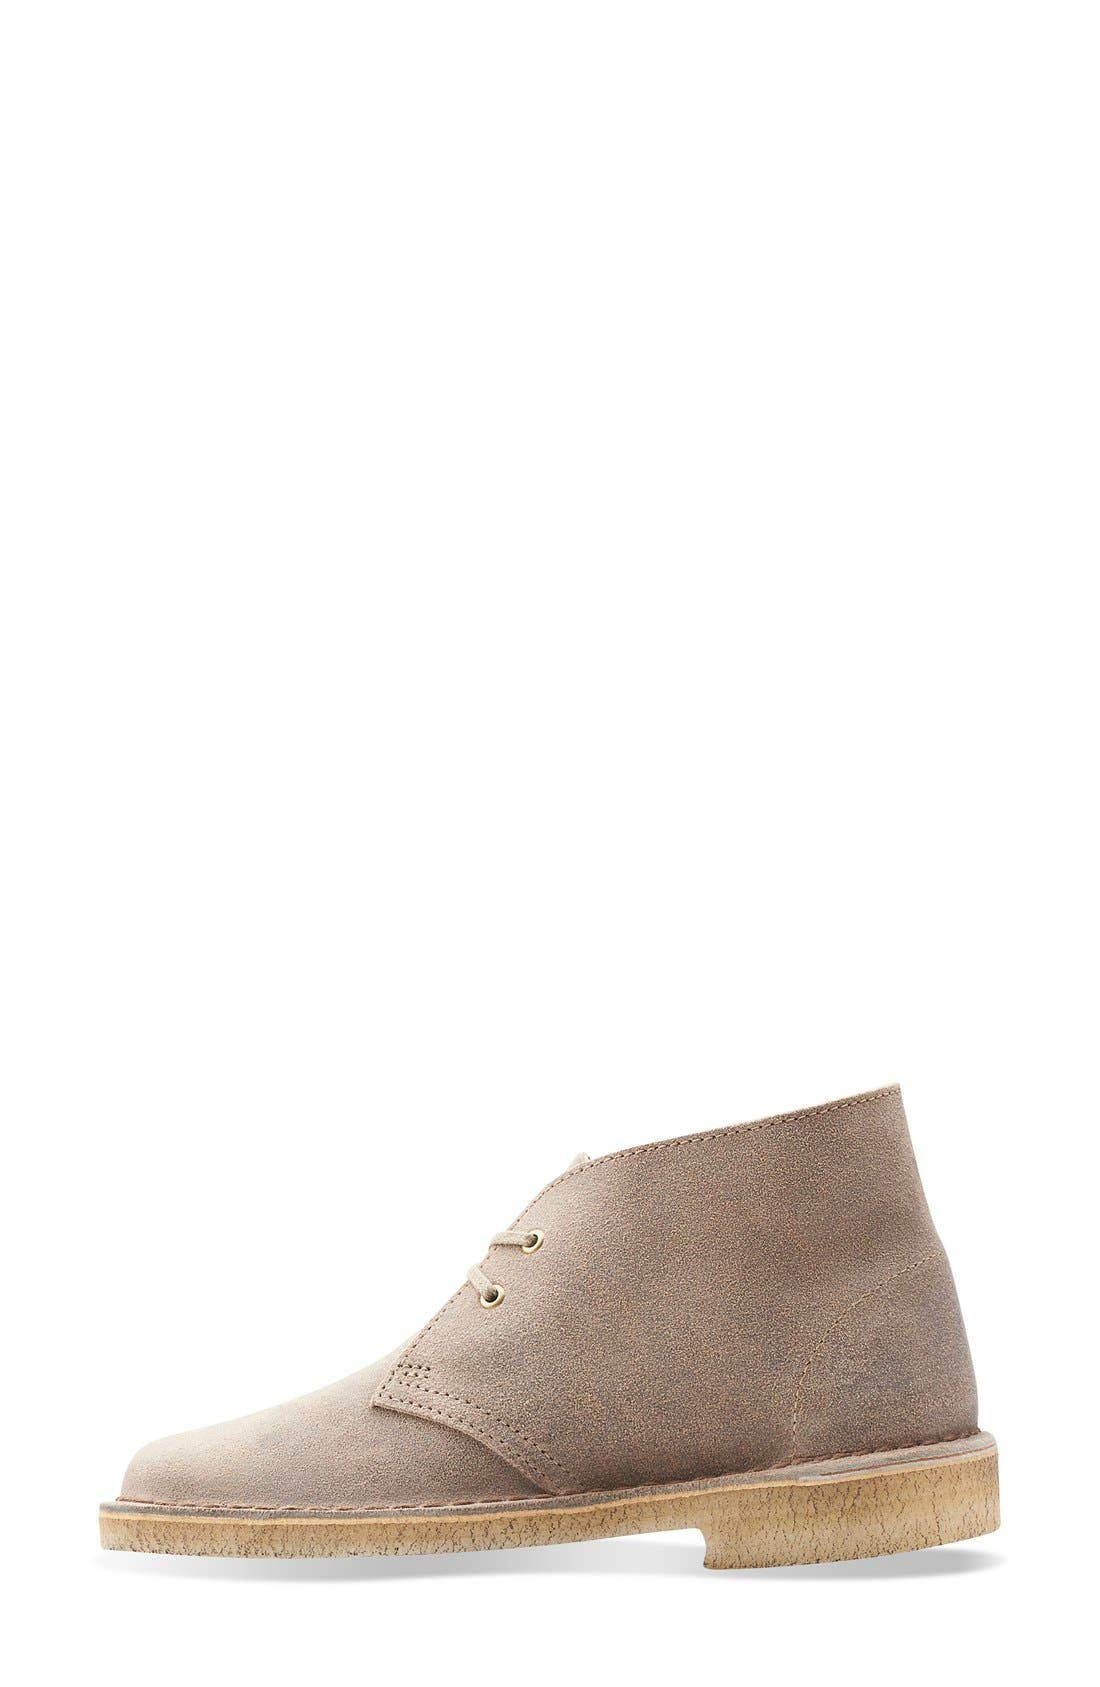 Desert Boot,                             Alternate thumbnail 2, color,                             TAUPE DISTRESSED SUEDE